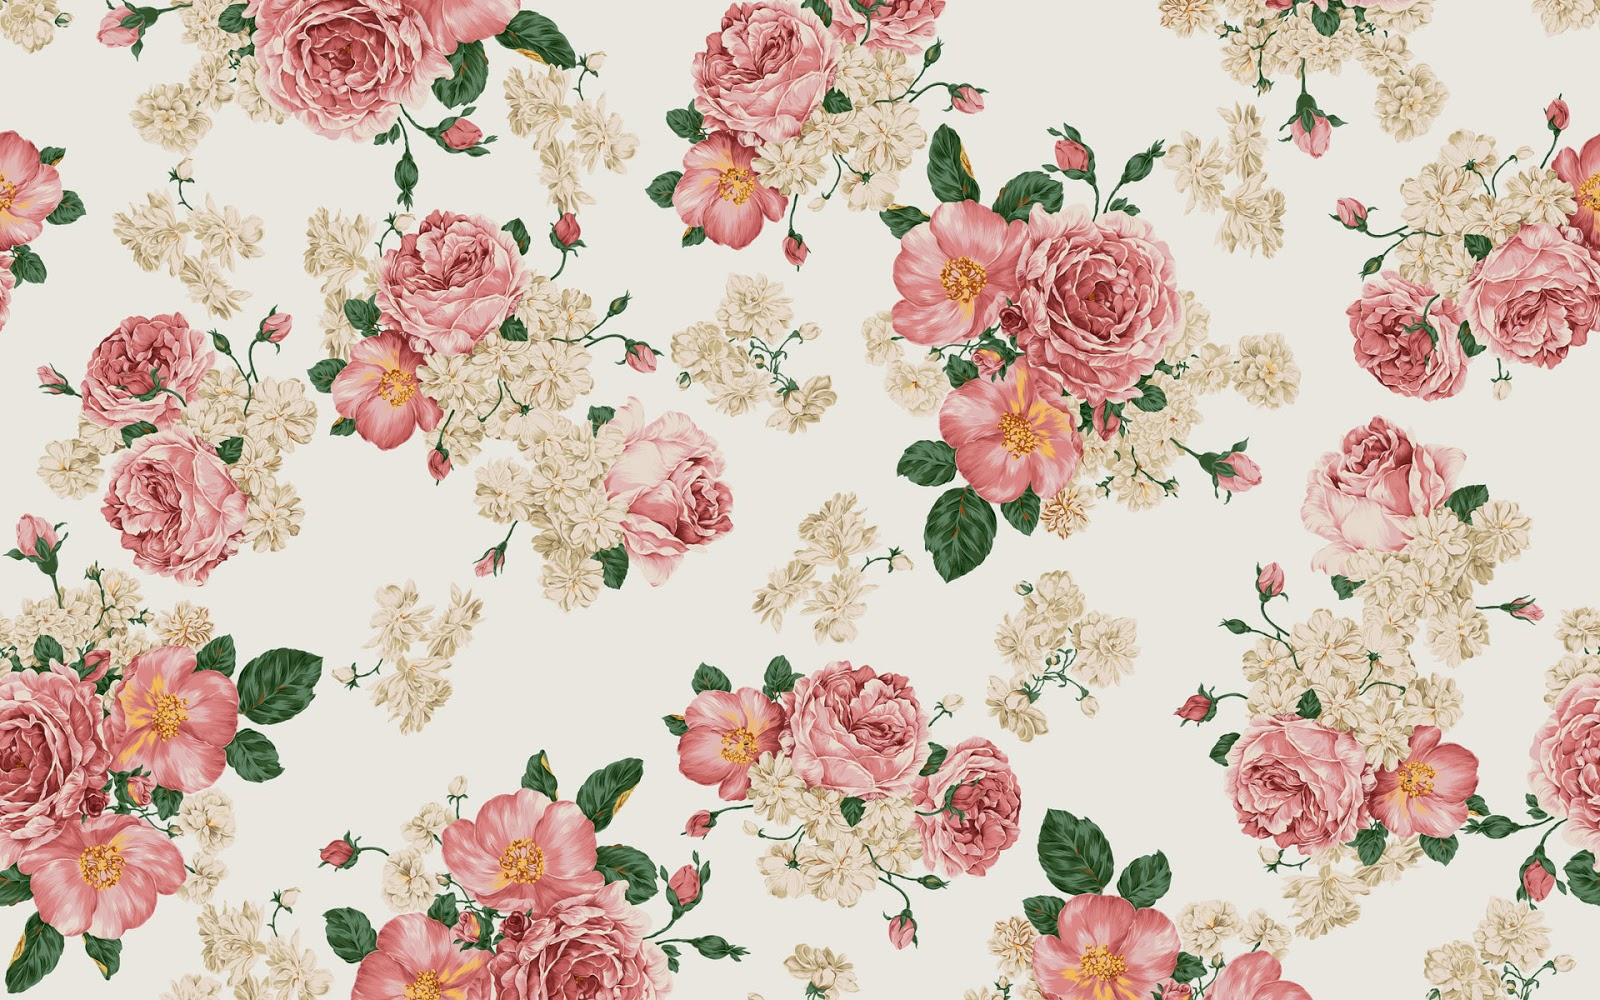 Pressed Flower Delights: Flower Wallpapers Tumblr